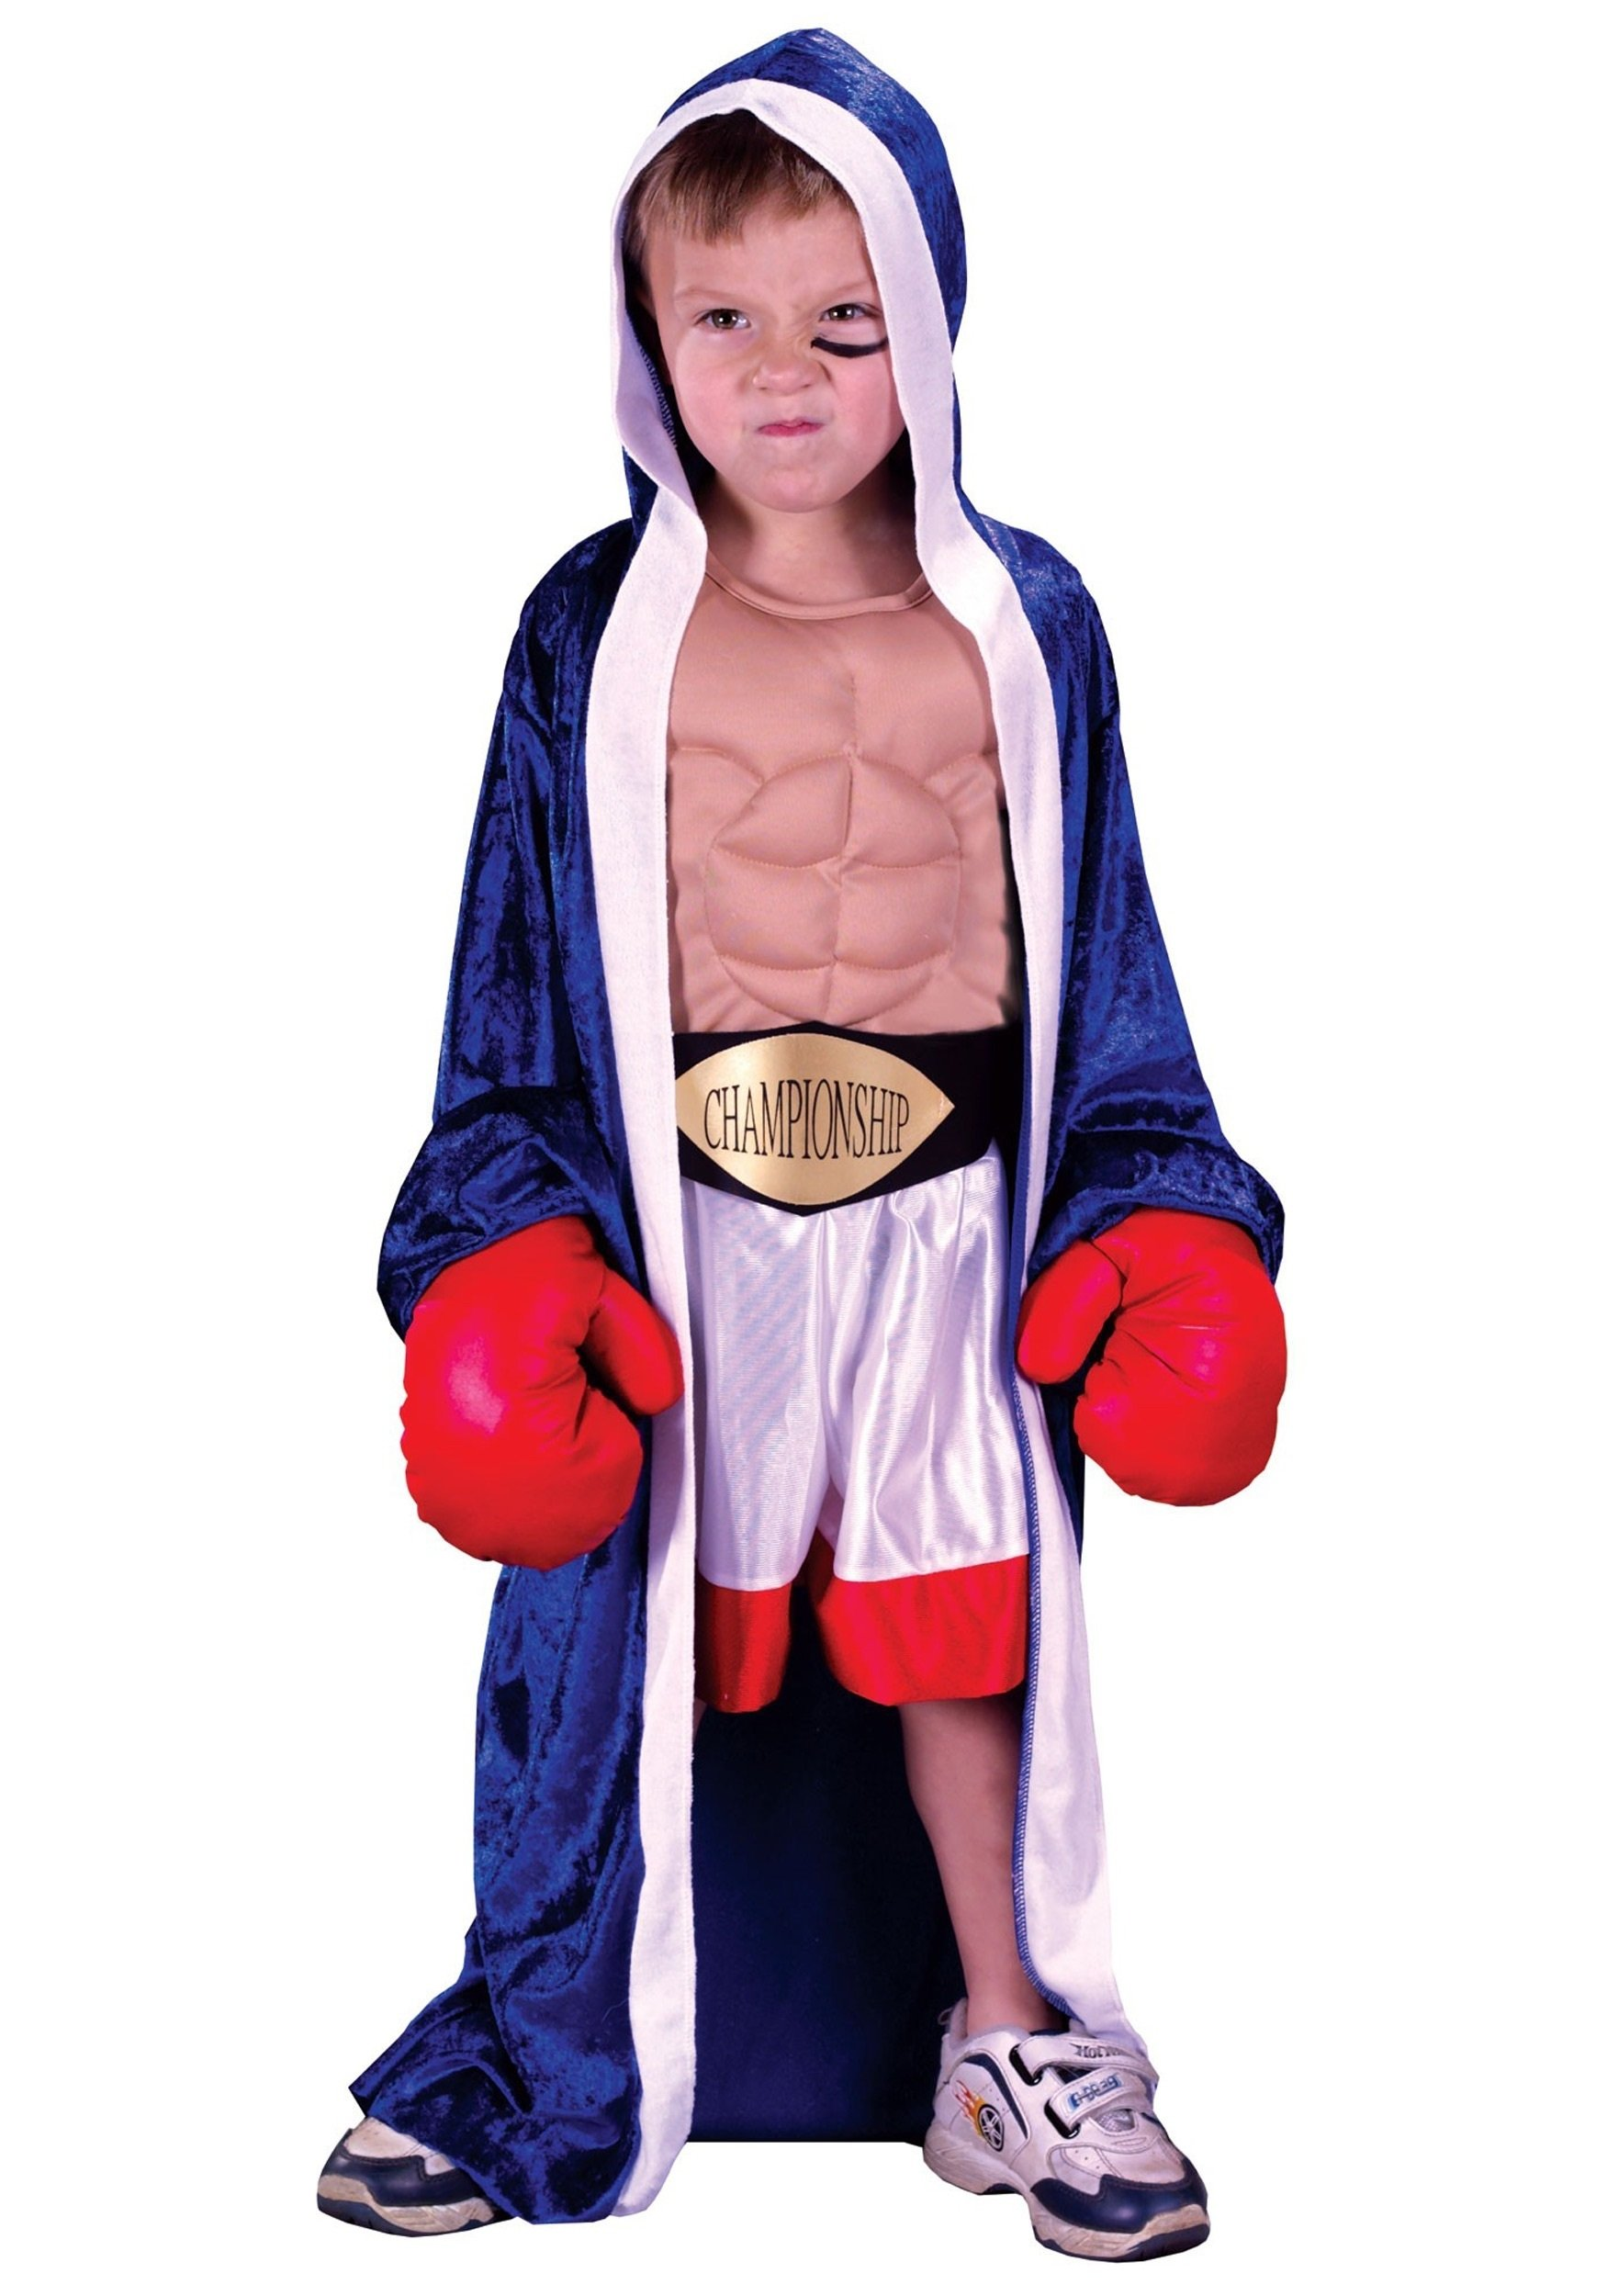 10 Amazing Halloween Costume Ideas For Boys toddler boxer champ costume kids boxer uniform costumes 2020